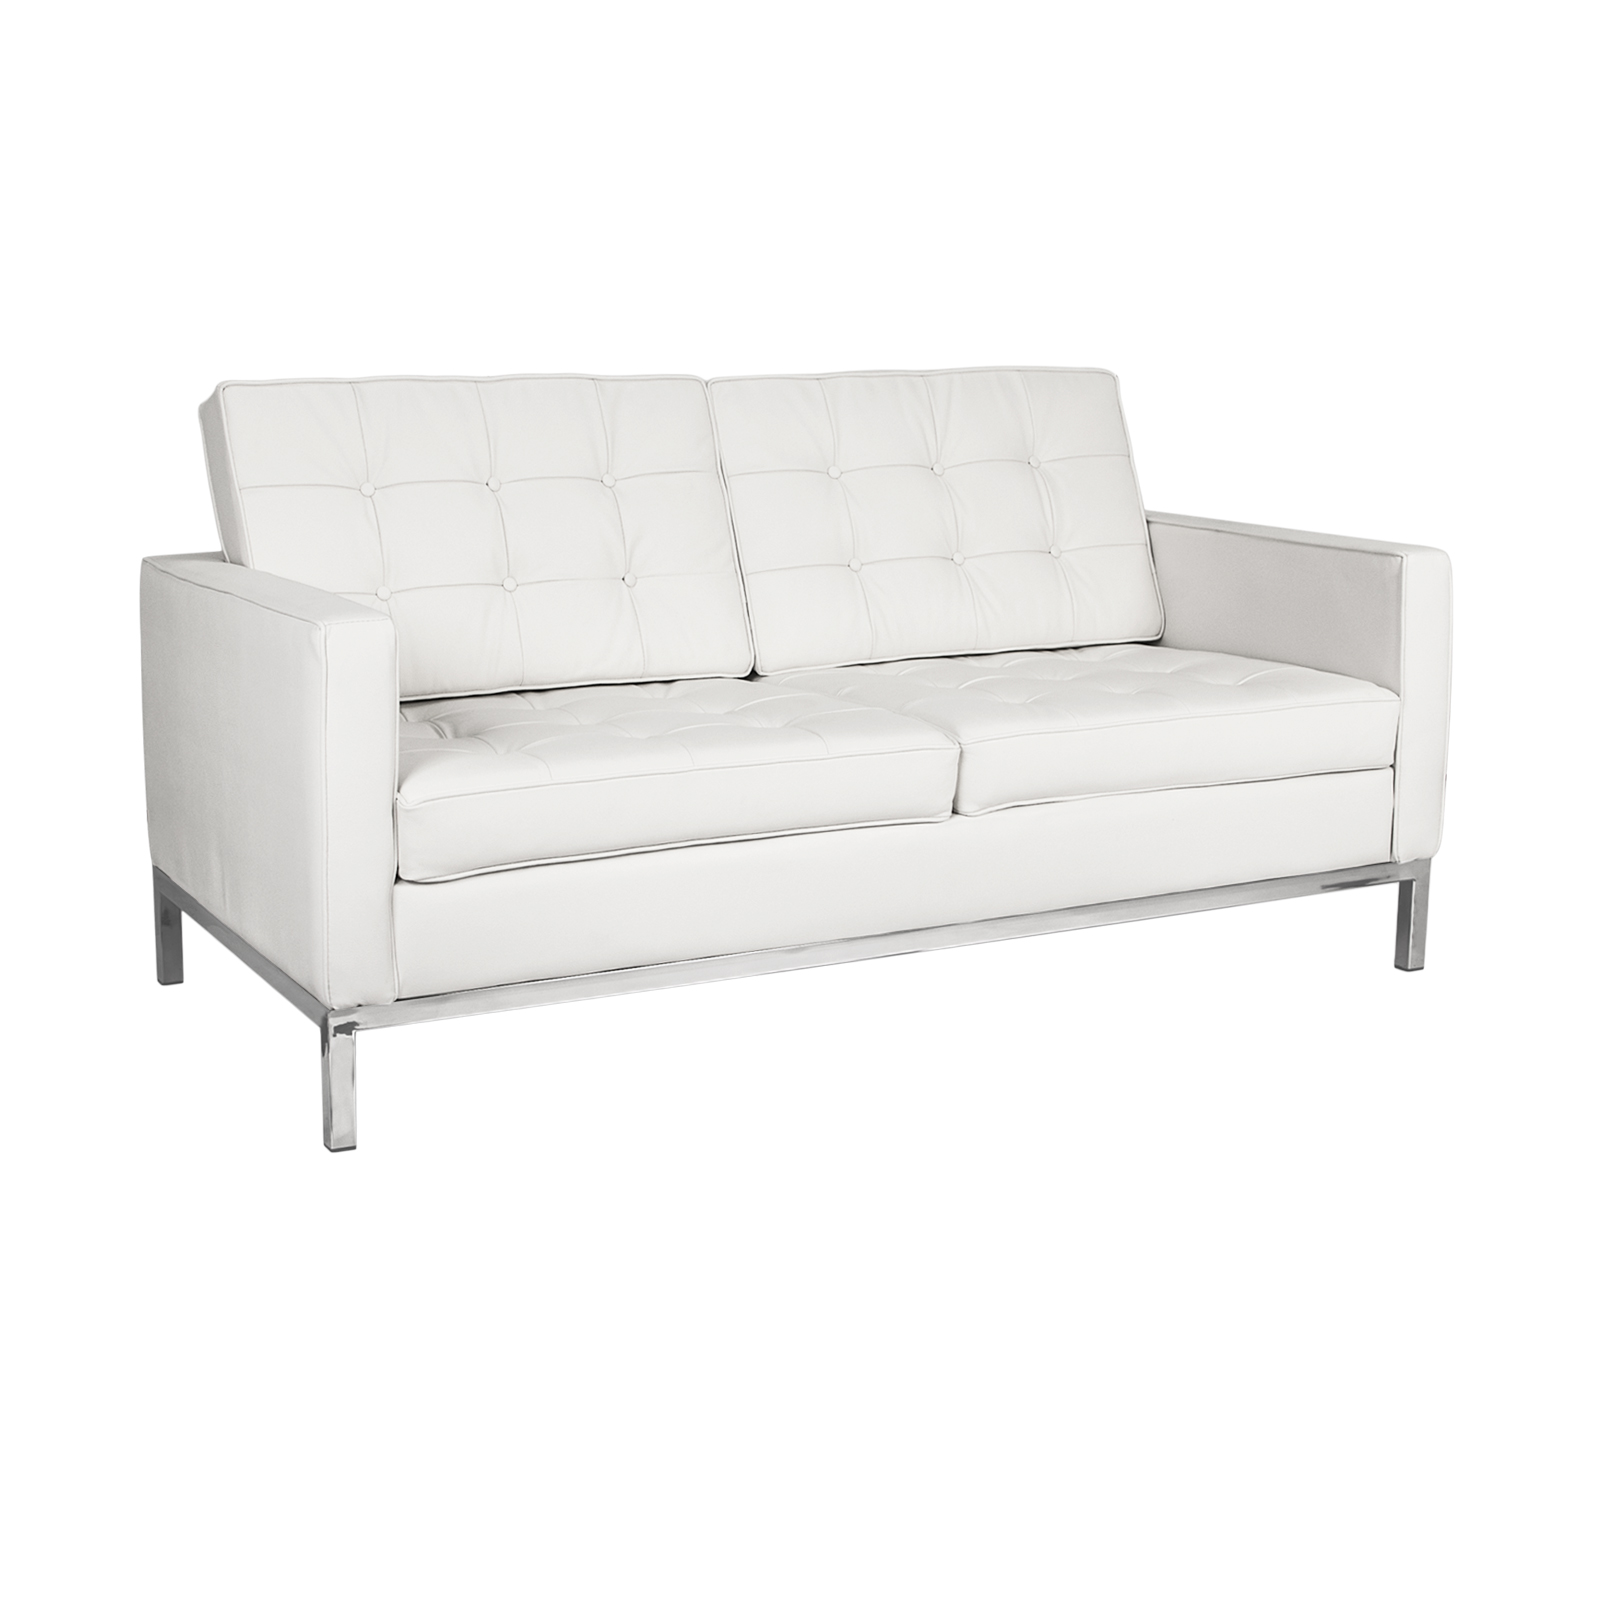 Florence Knoll Loveseat  White Florence Knoll Sofa Rentals   Event Furniture Rental. Florence Knoll Sofa Dimensions. Home Design Ideas